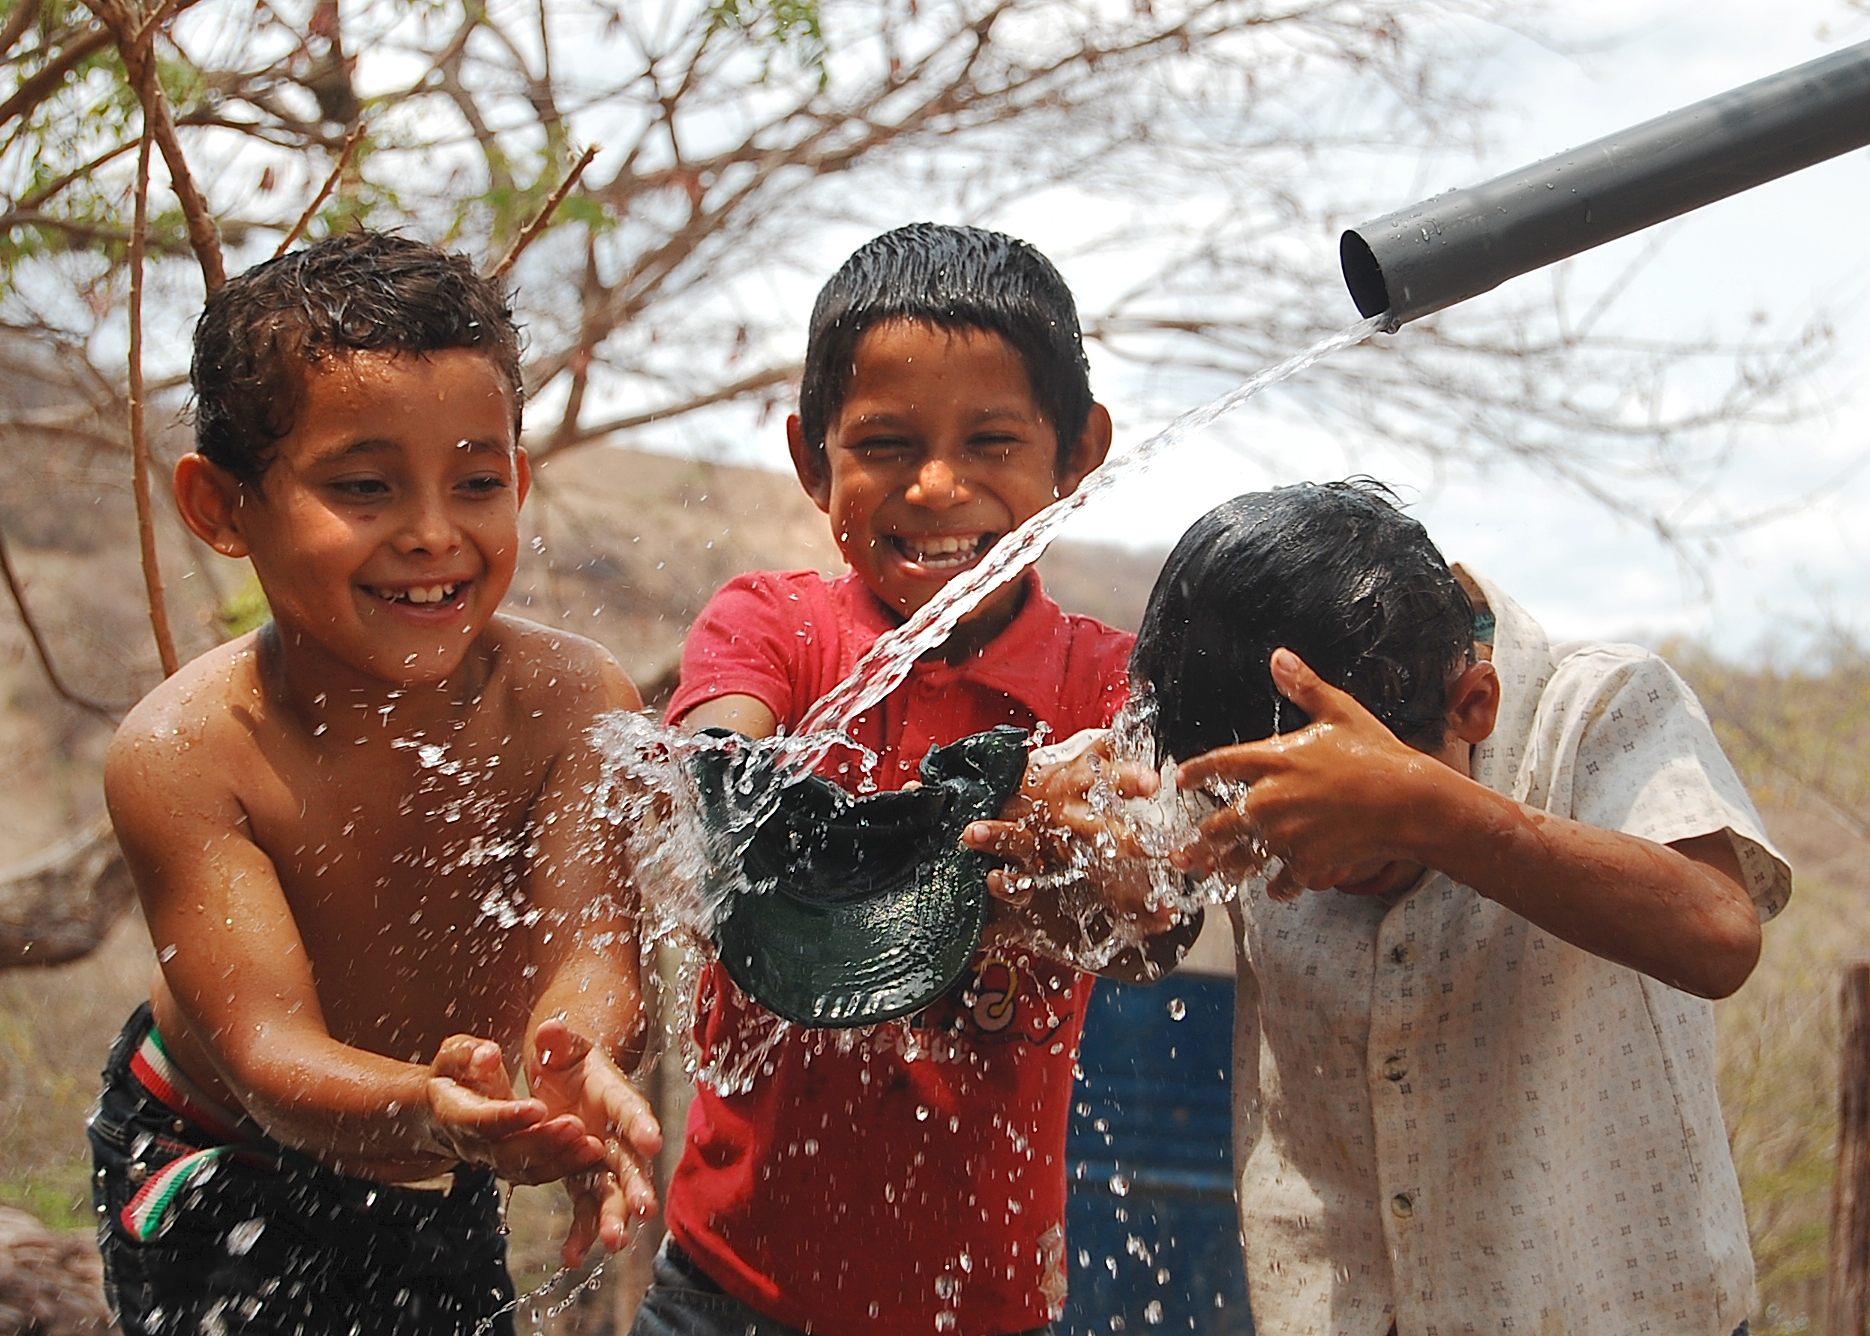 Clean water project Nicaragua